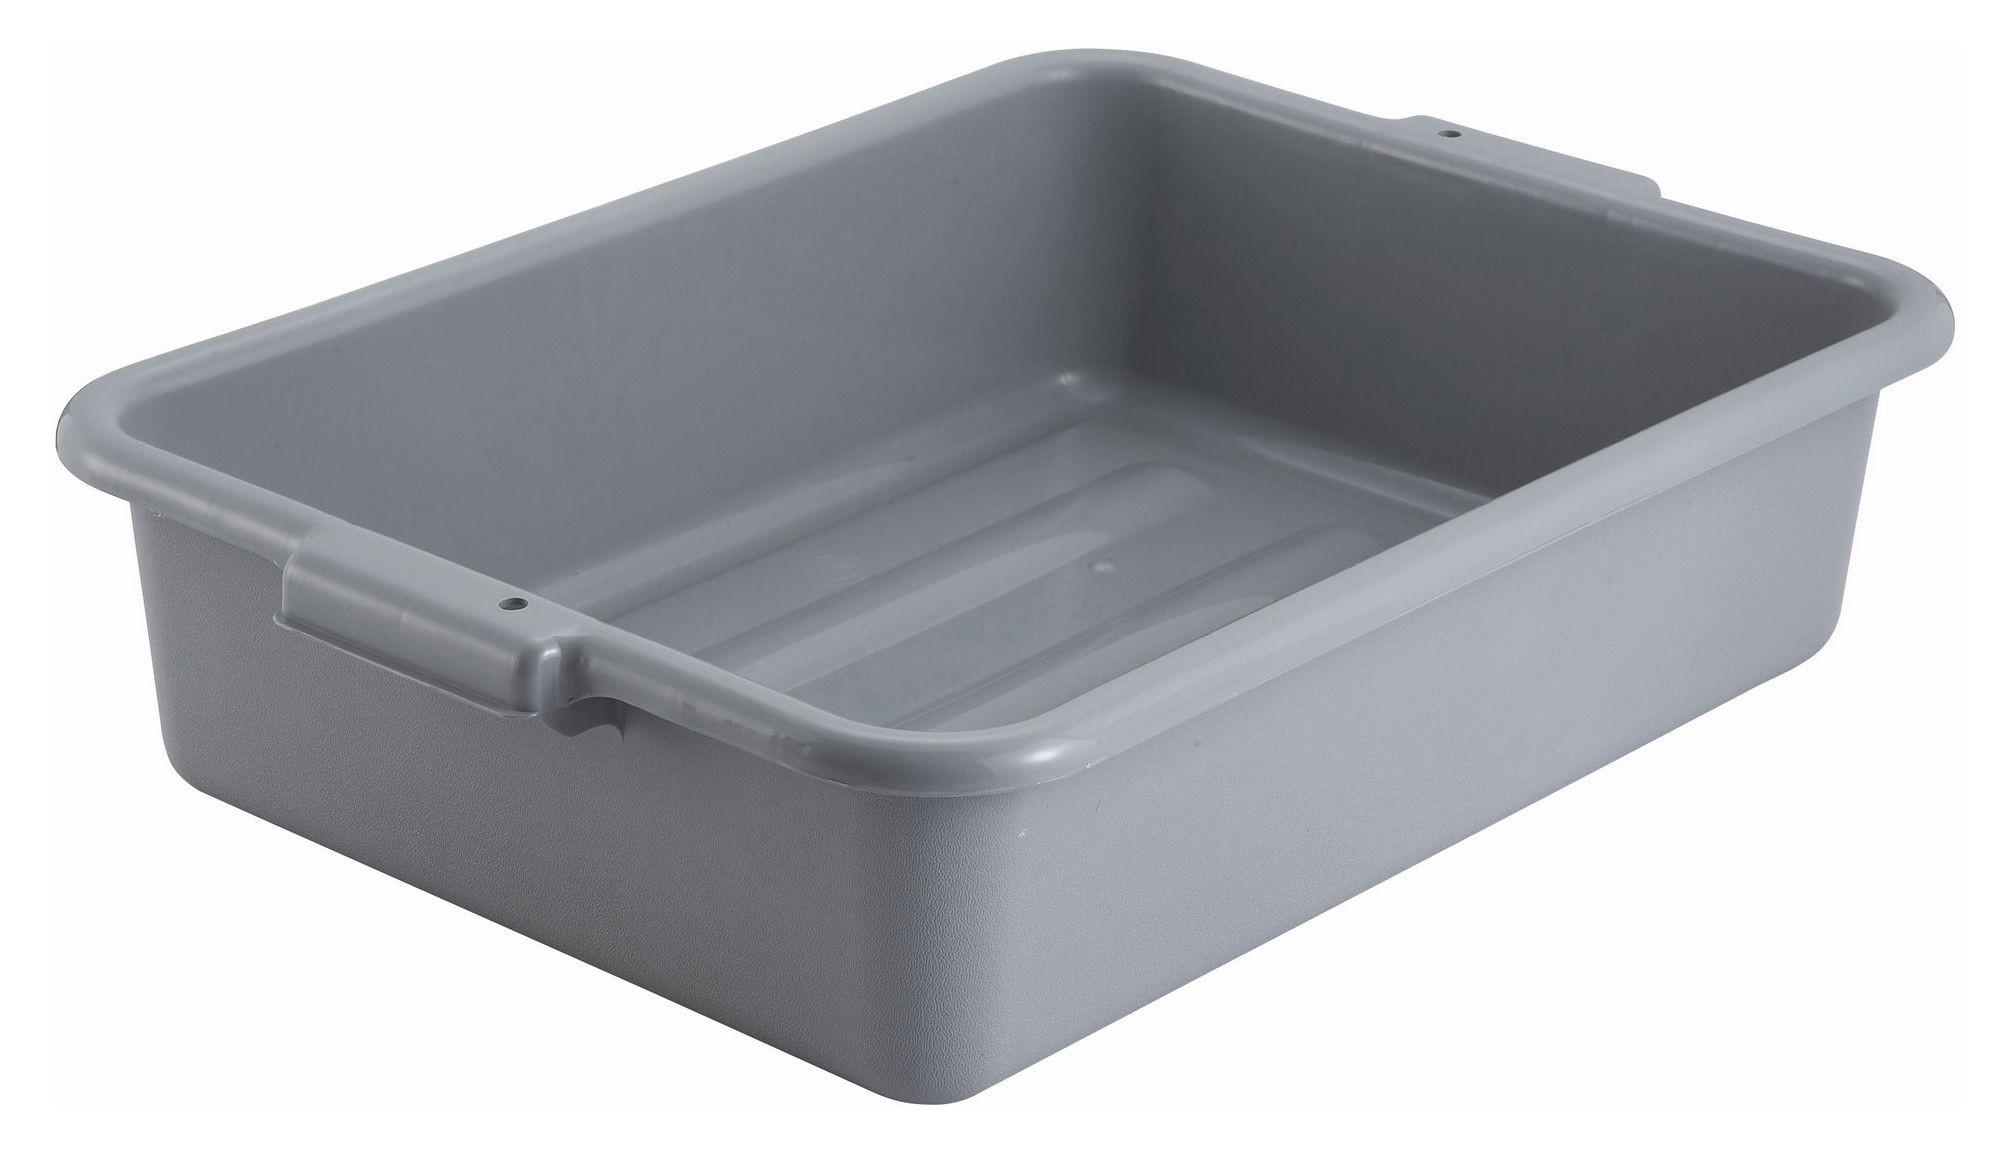 Grey Dish Box - 20-1/4 x 15-1/2 x 5 (Lid not included)